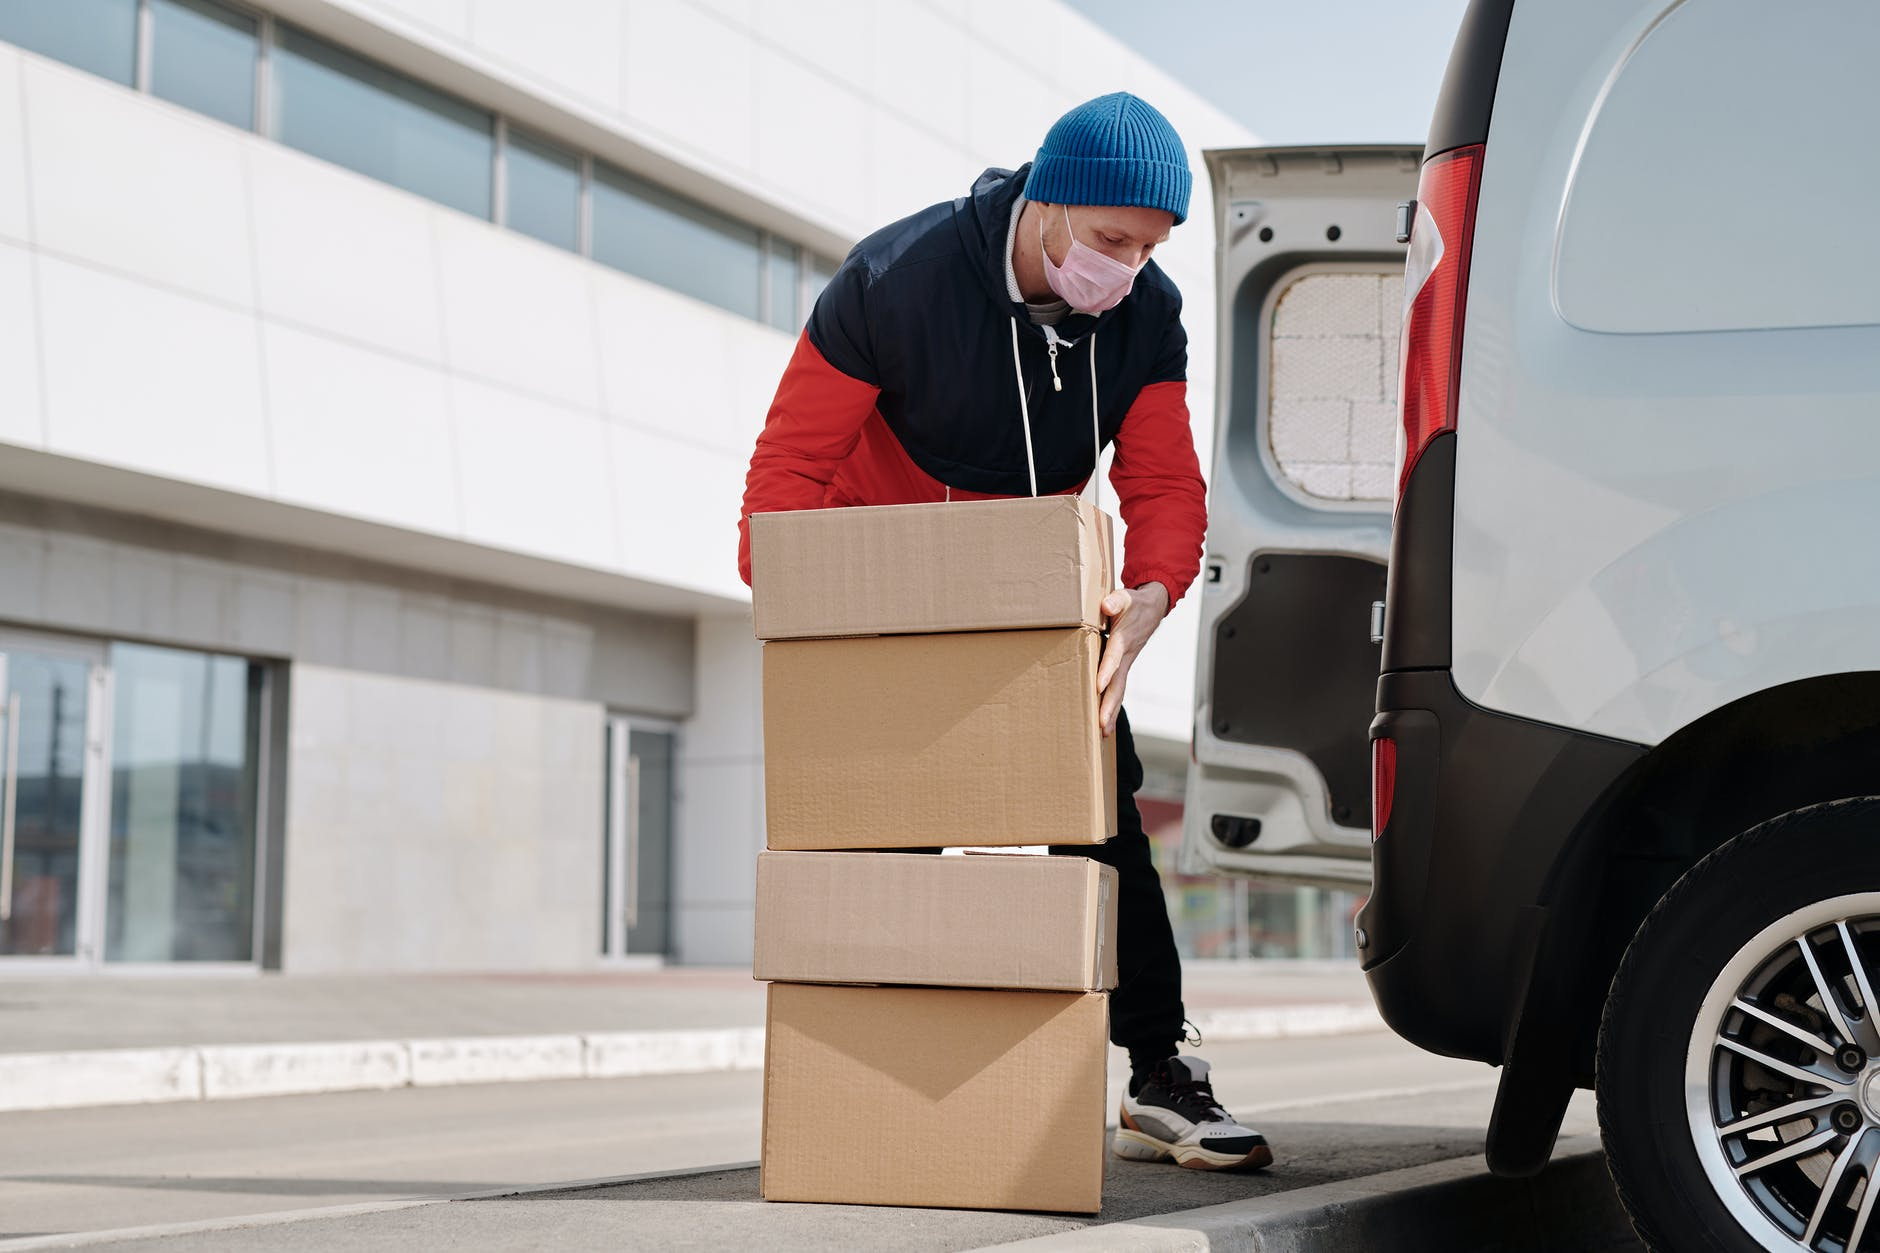 Restroom Rentals Support Logistics Companies During Holiday Season